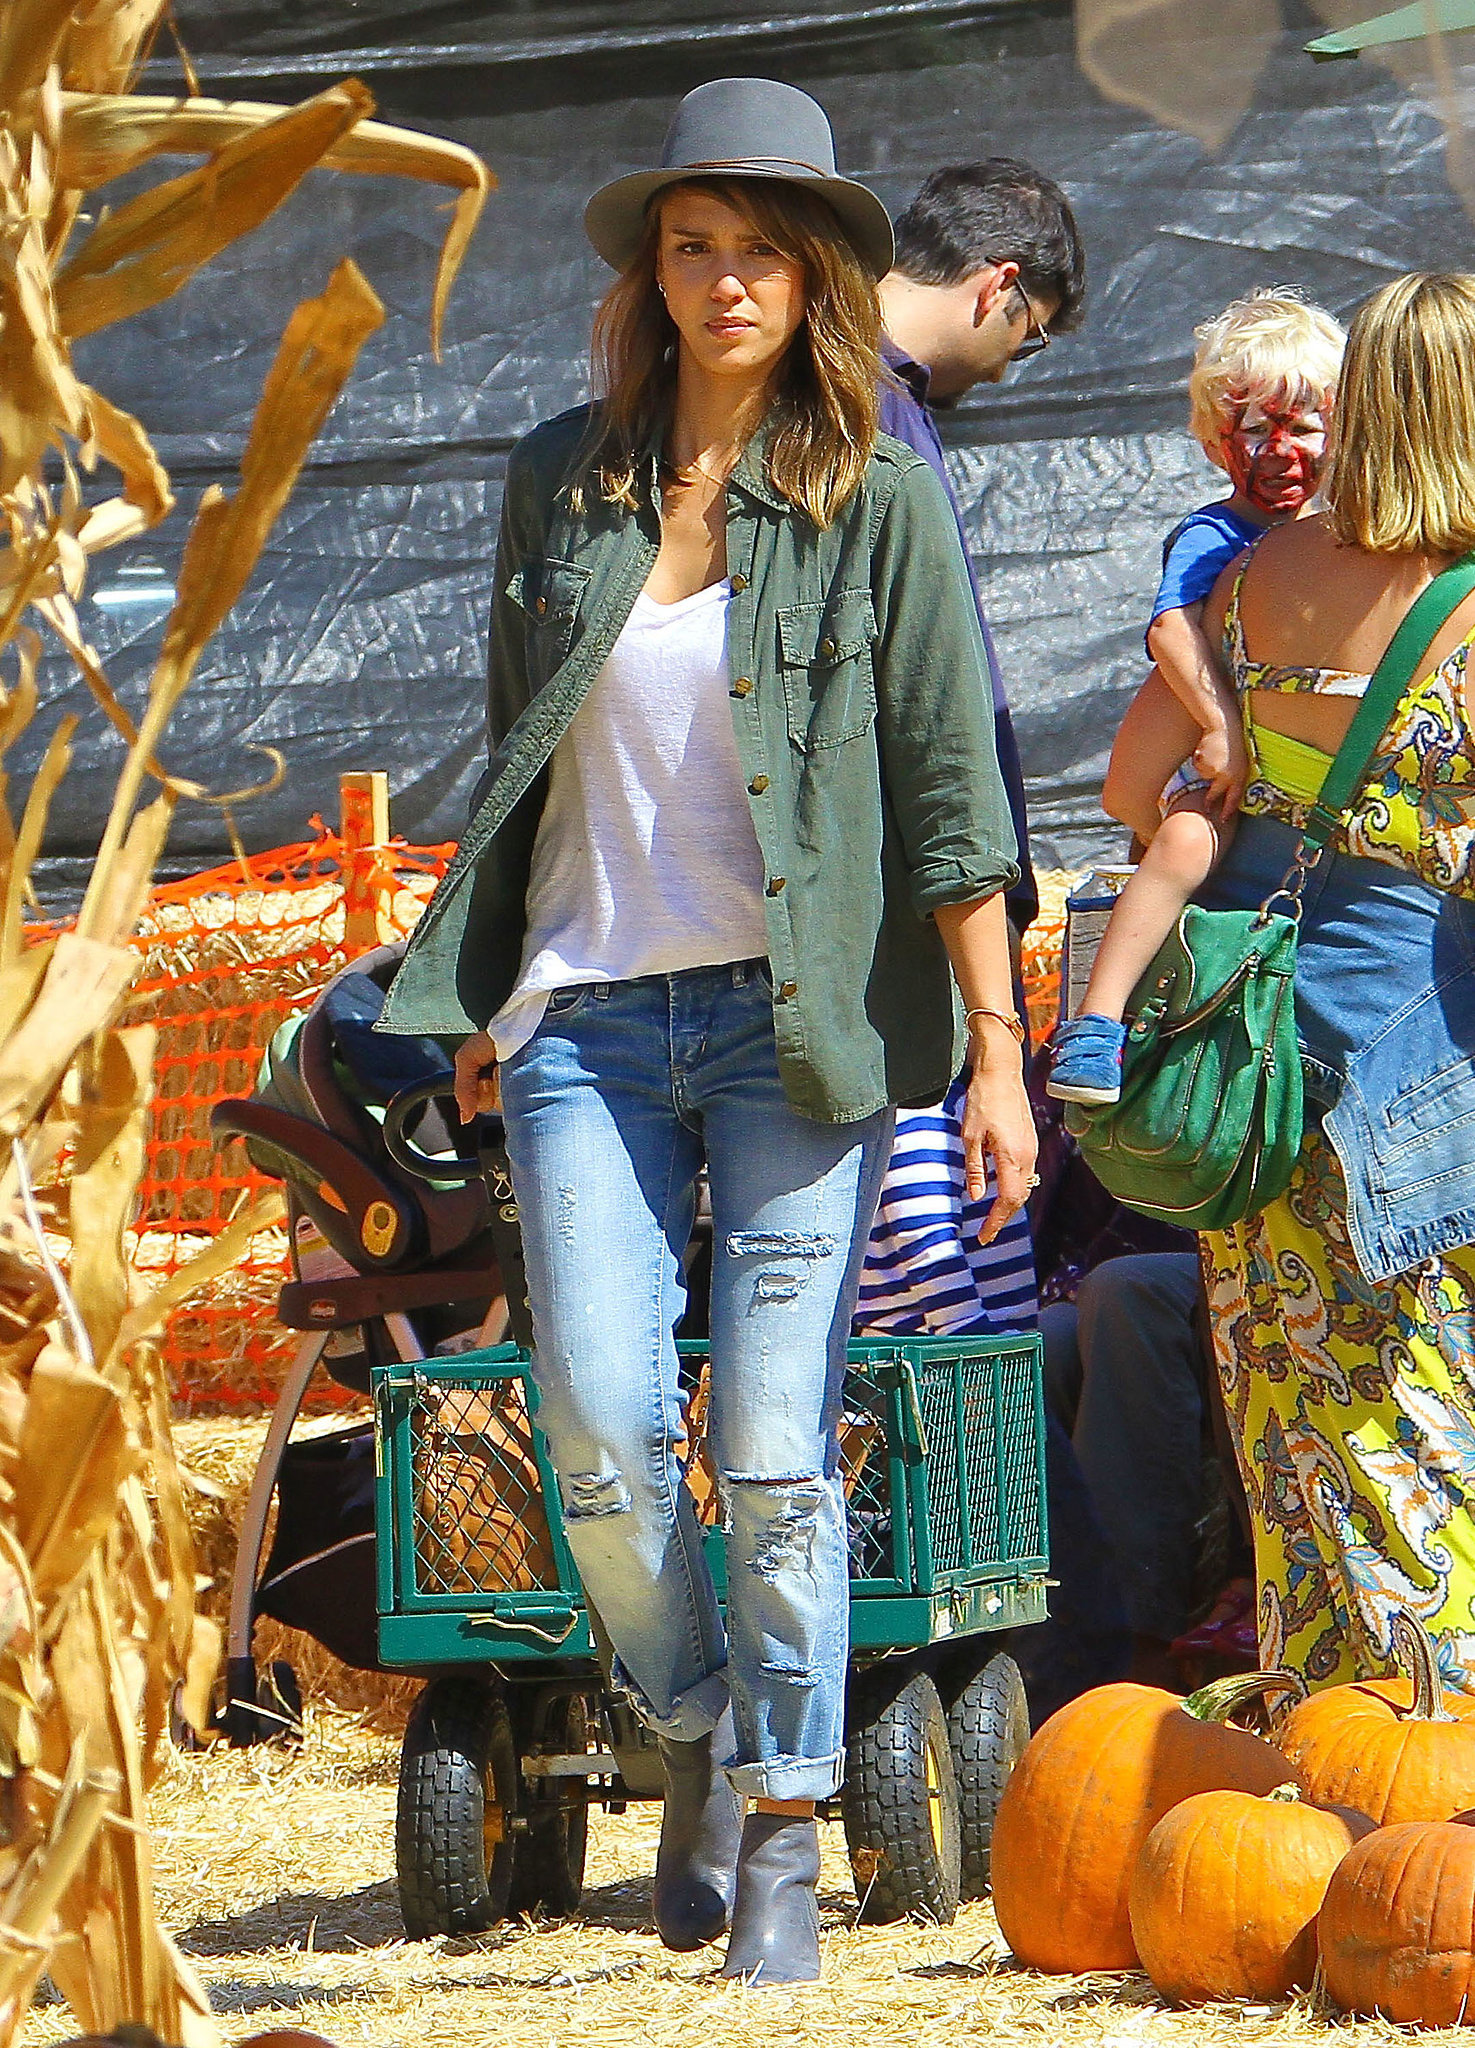 Cruising Mr. Bones Pumpkin Patch in ripped boyfriend jeans, The Perfect Shirt by Current/Elliott, and gray ankle boots.